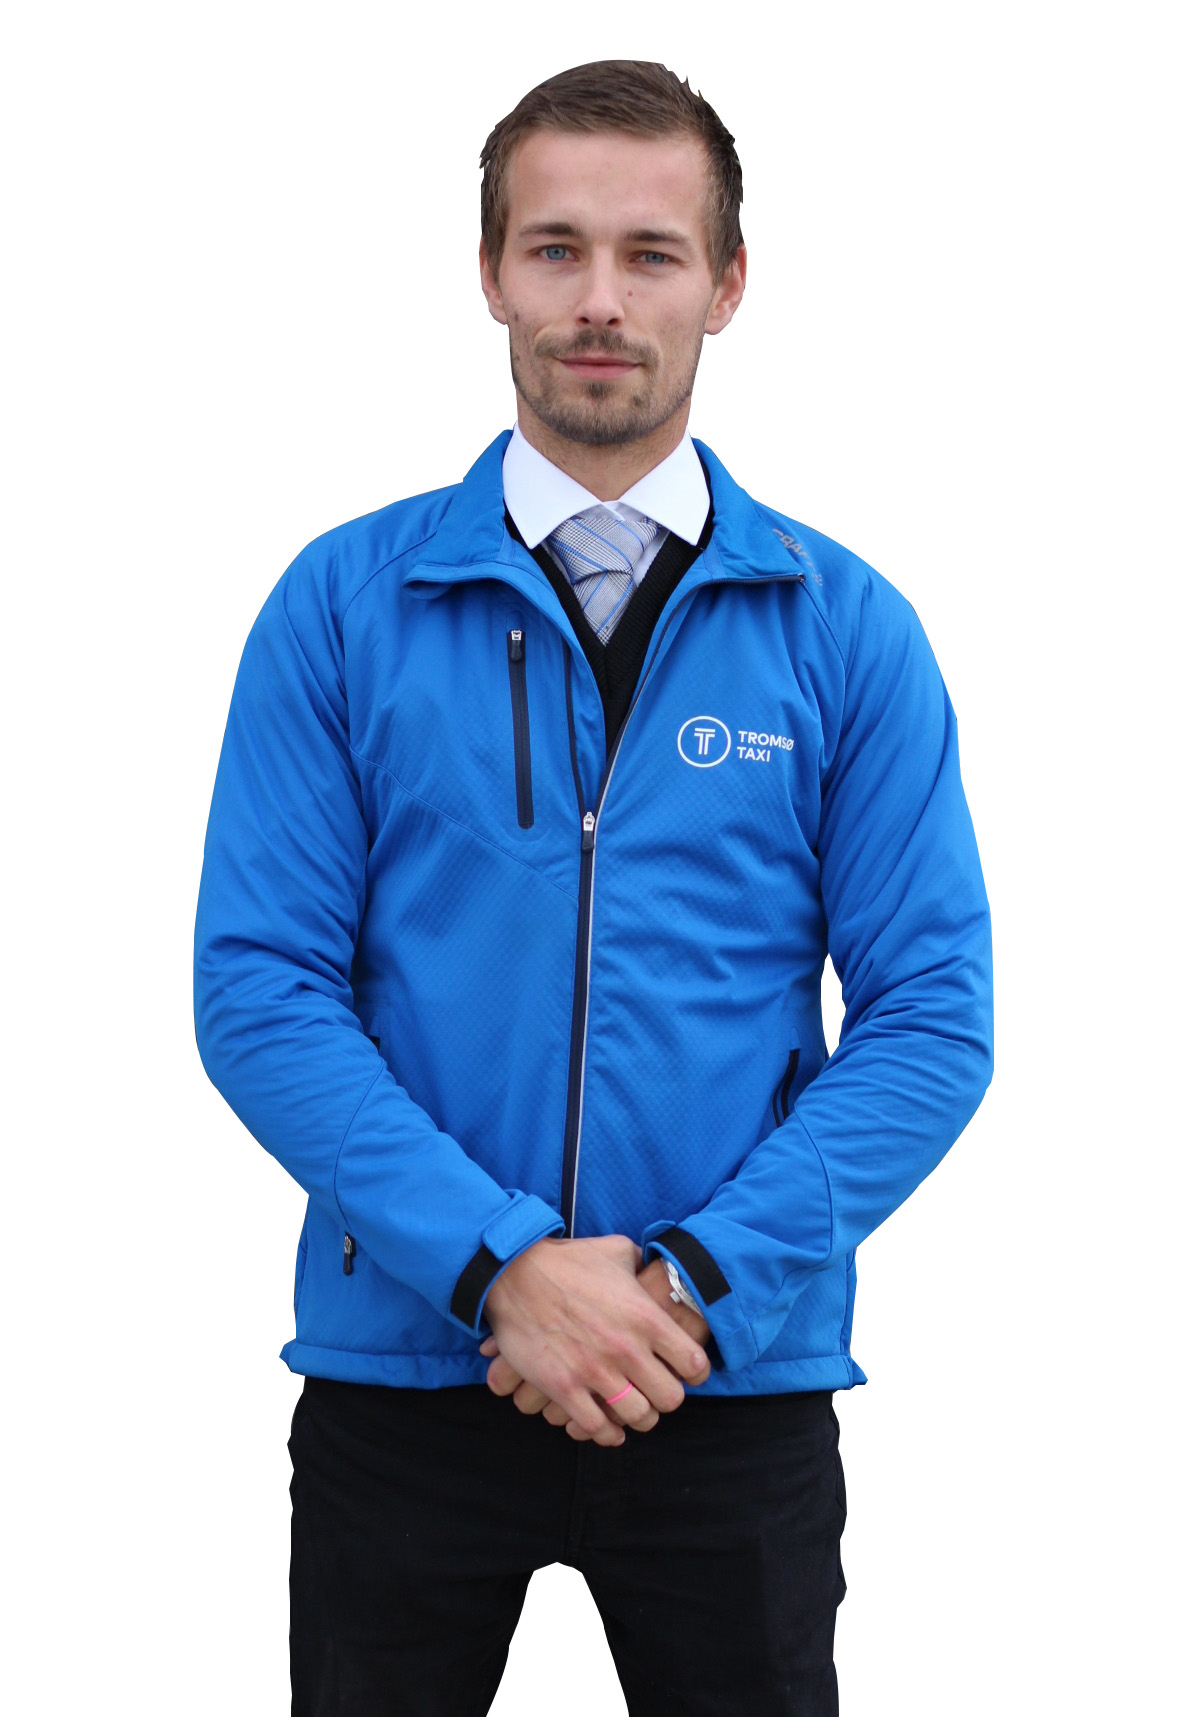 Work uniform blue